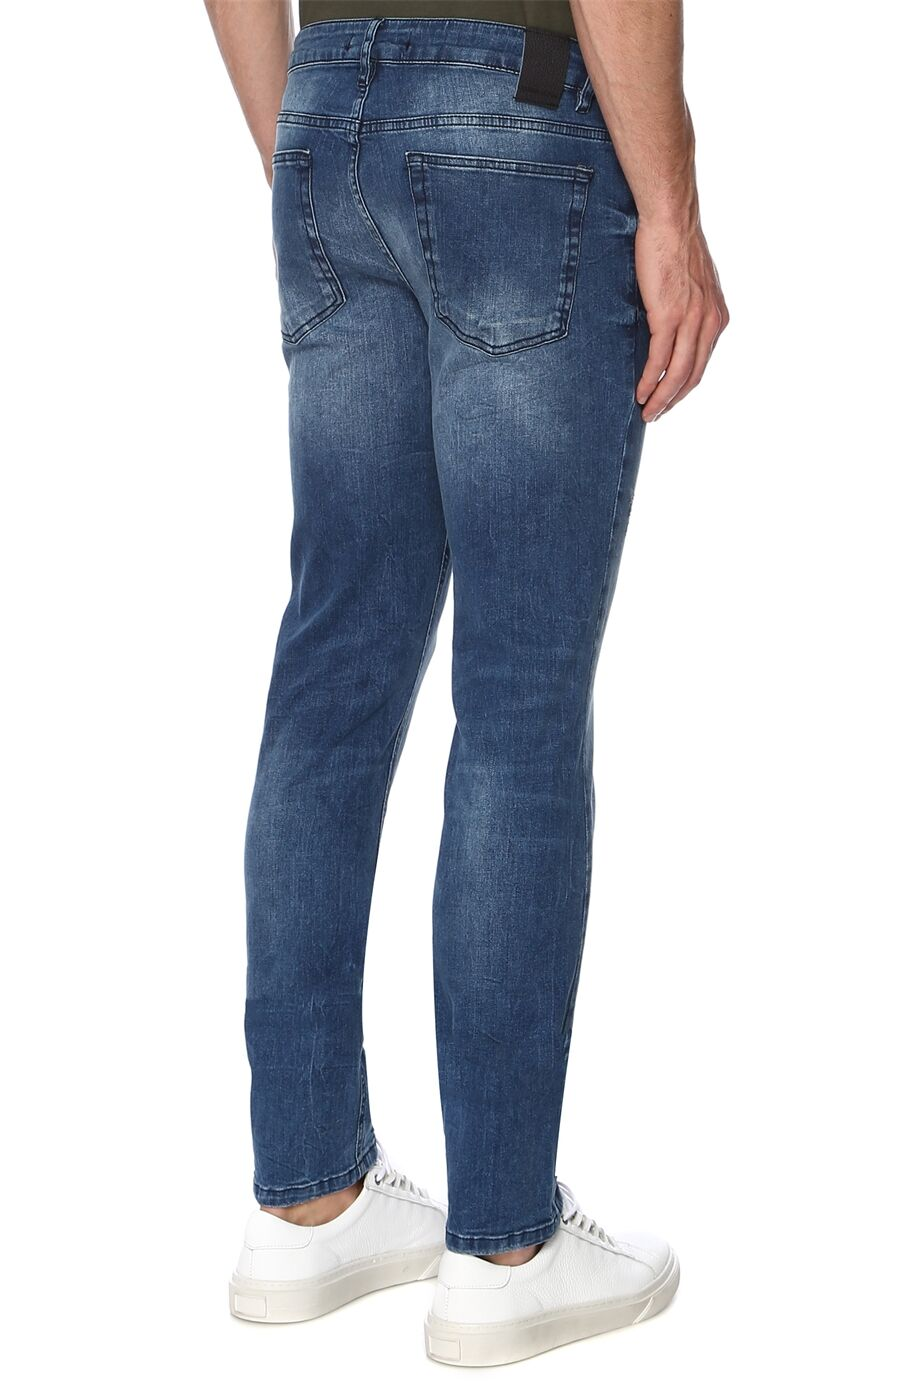 Slım Fit Lacivert Denim Pantolon